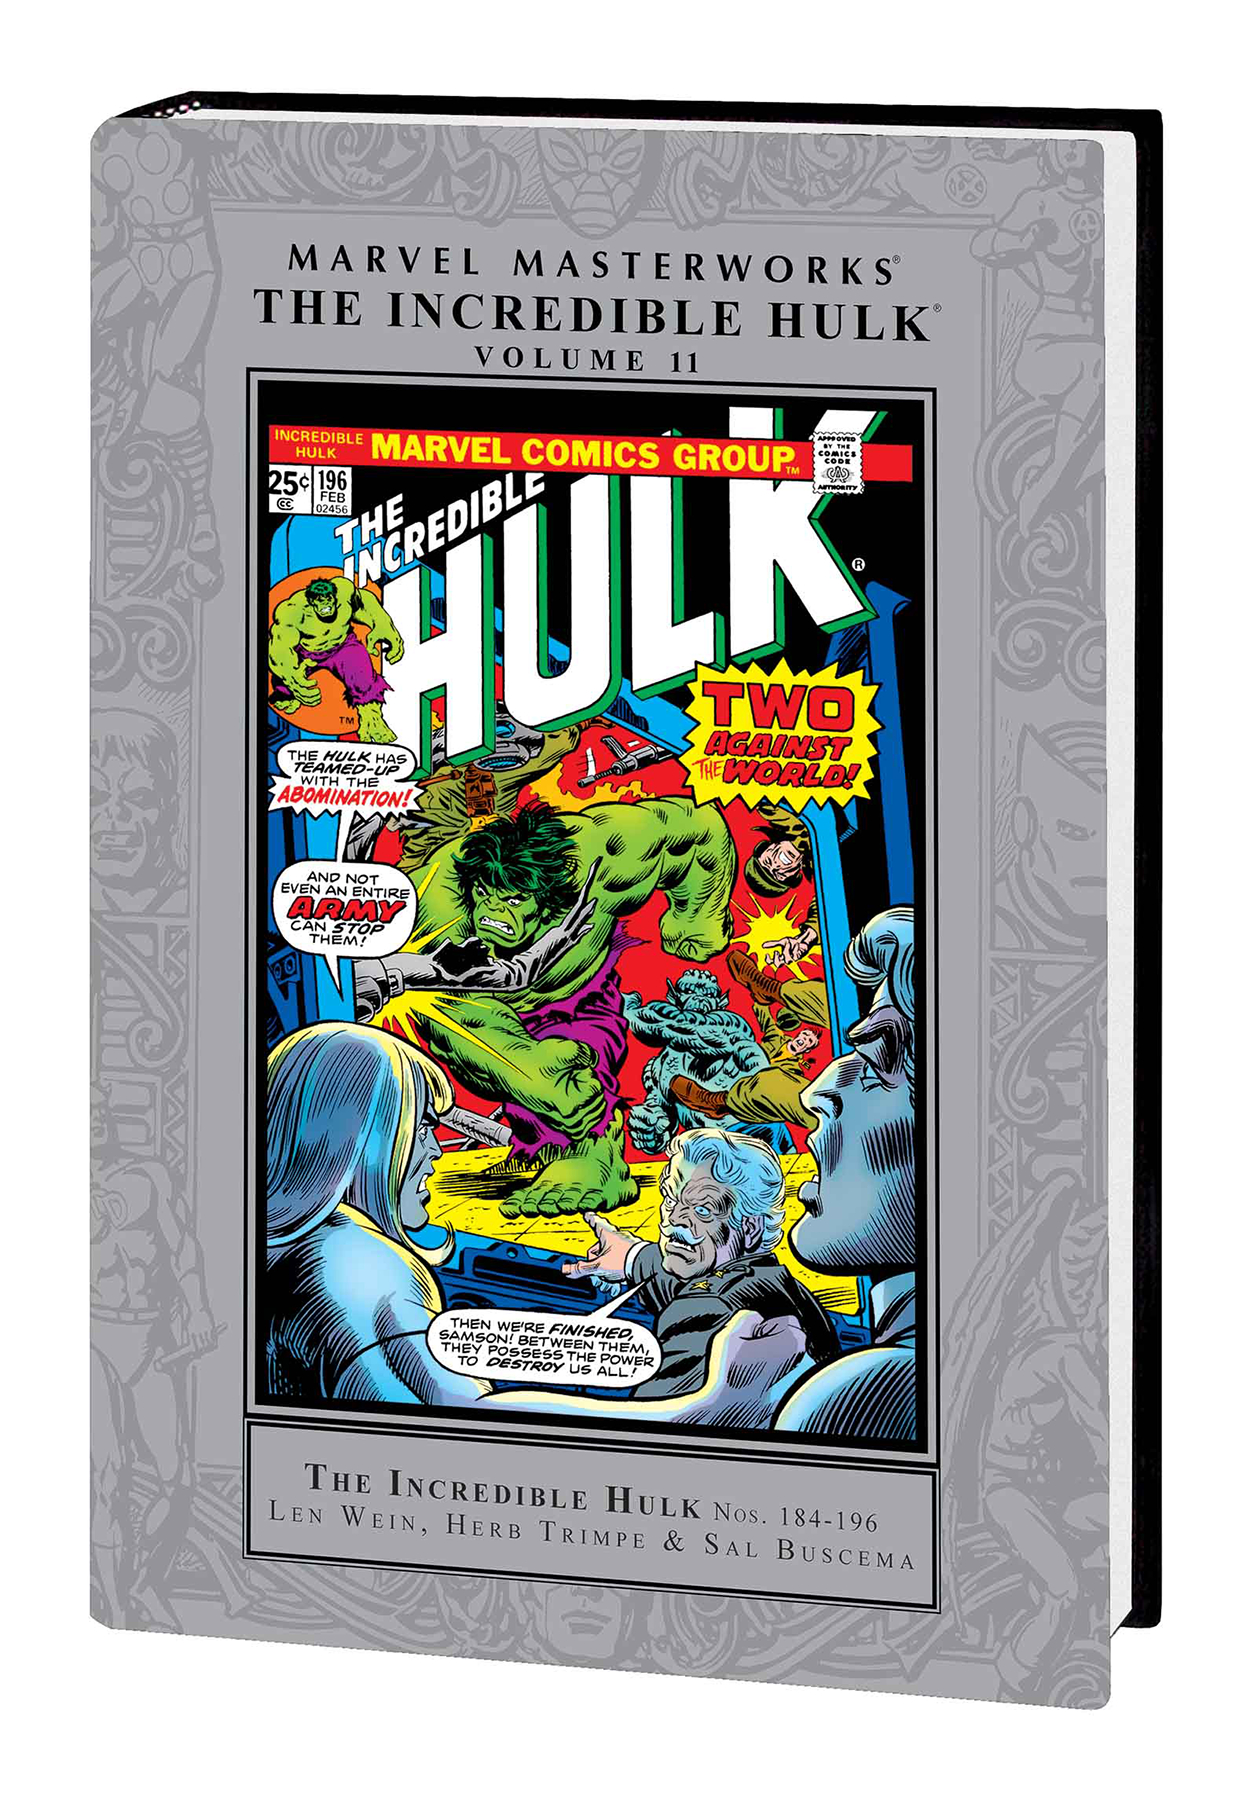 MMW INCREDIBLE HULK HC VOL 11